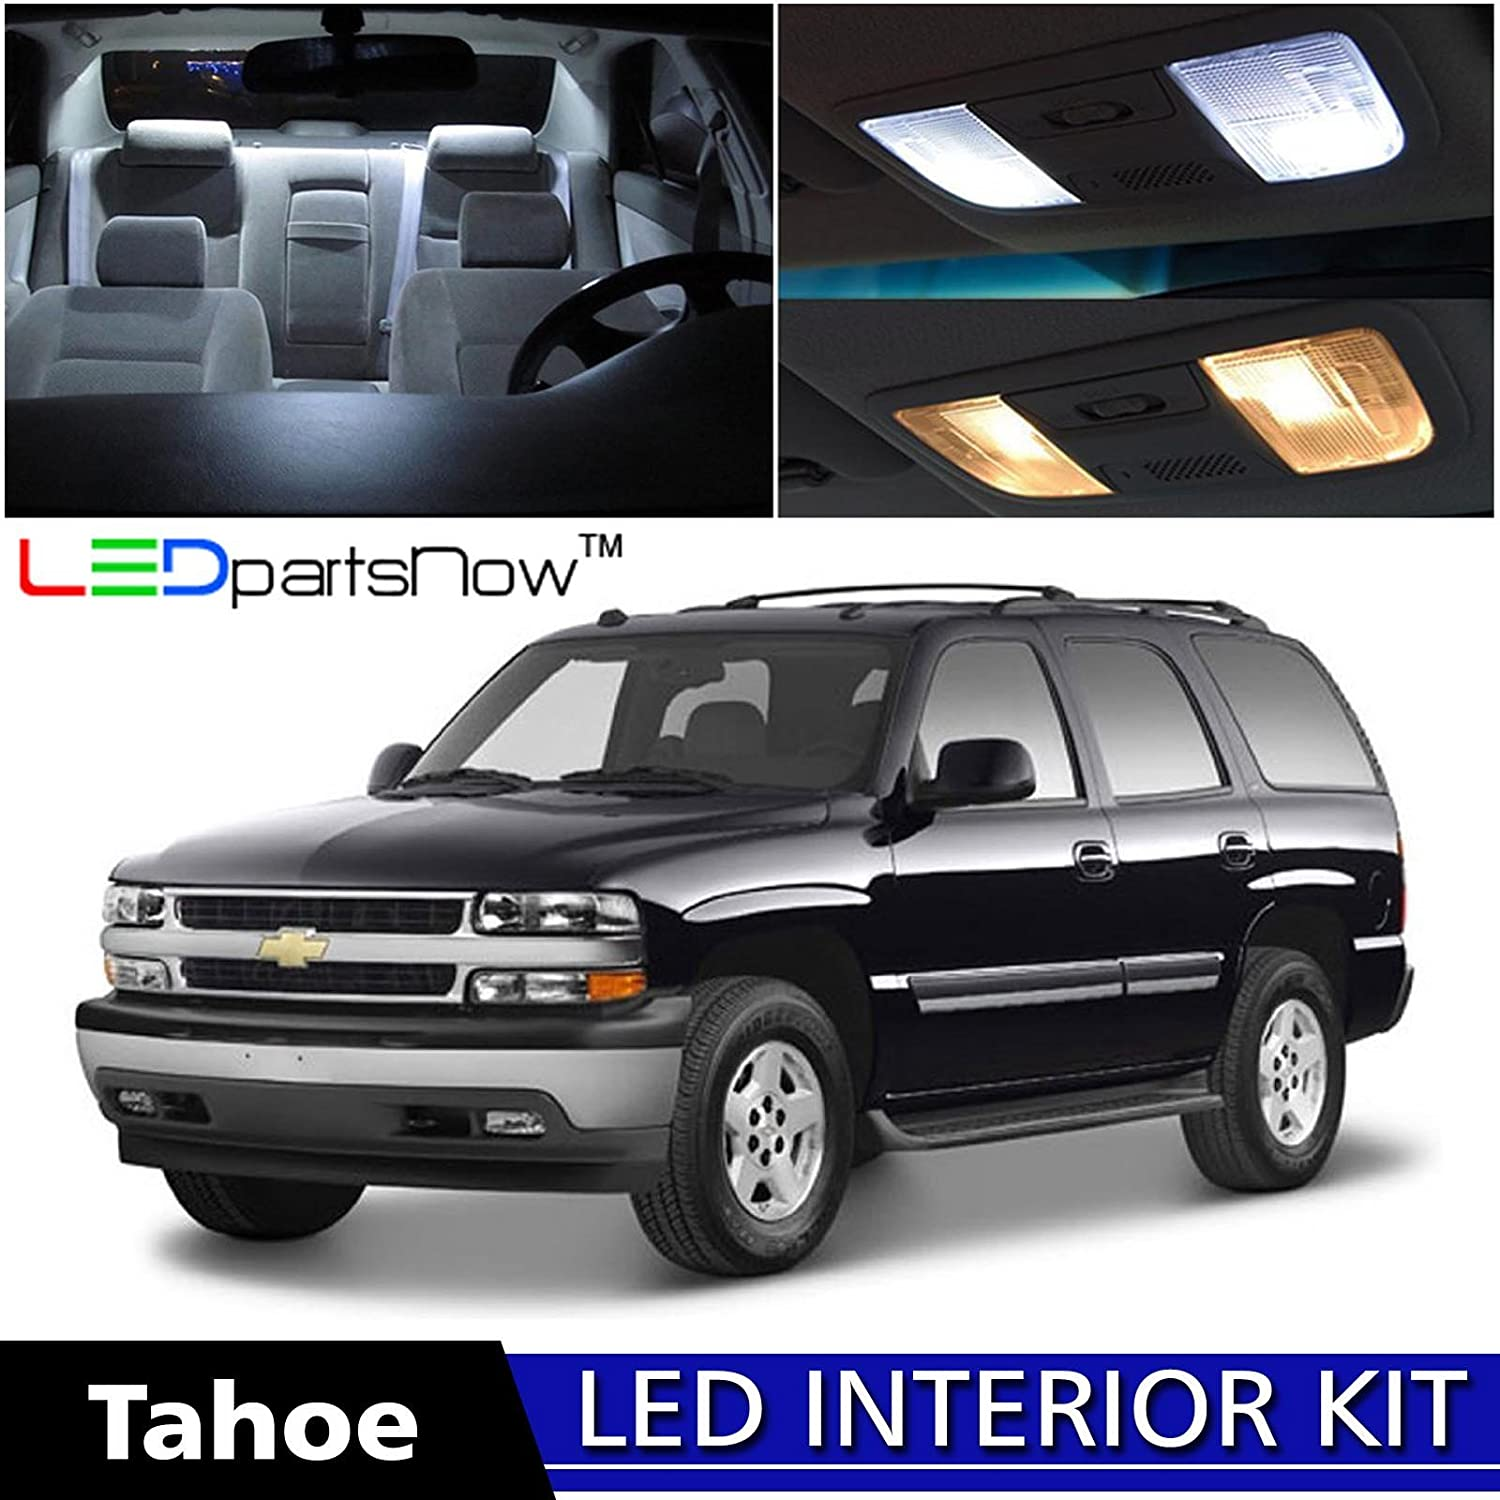 amazoncom ledpartsnow chevy tahoe led interior lights accessories replacement package kit pieces white tool automotive